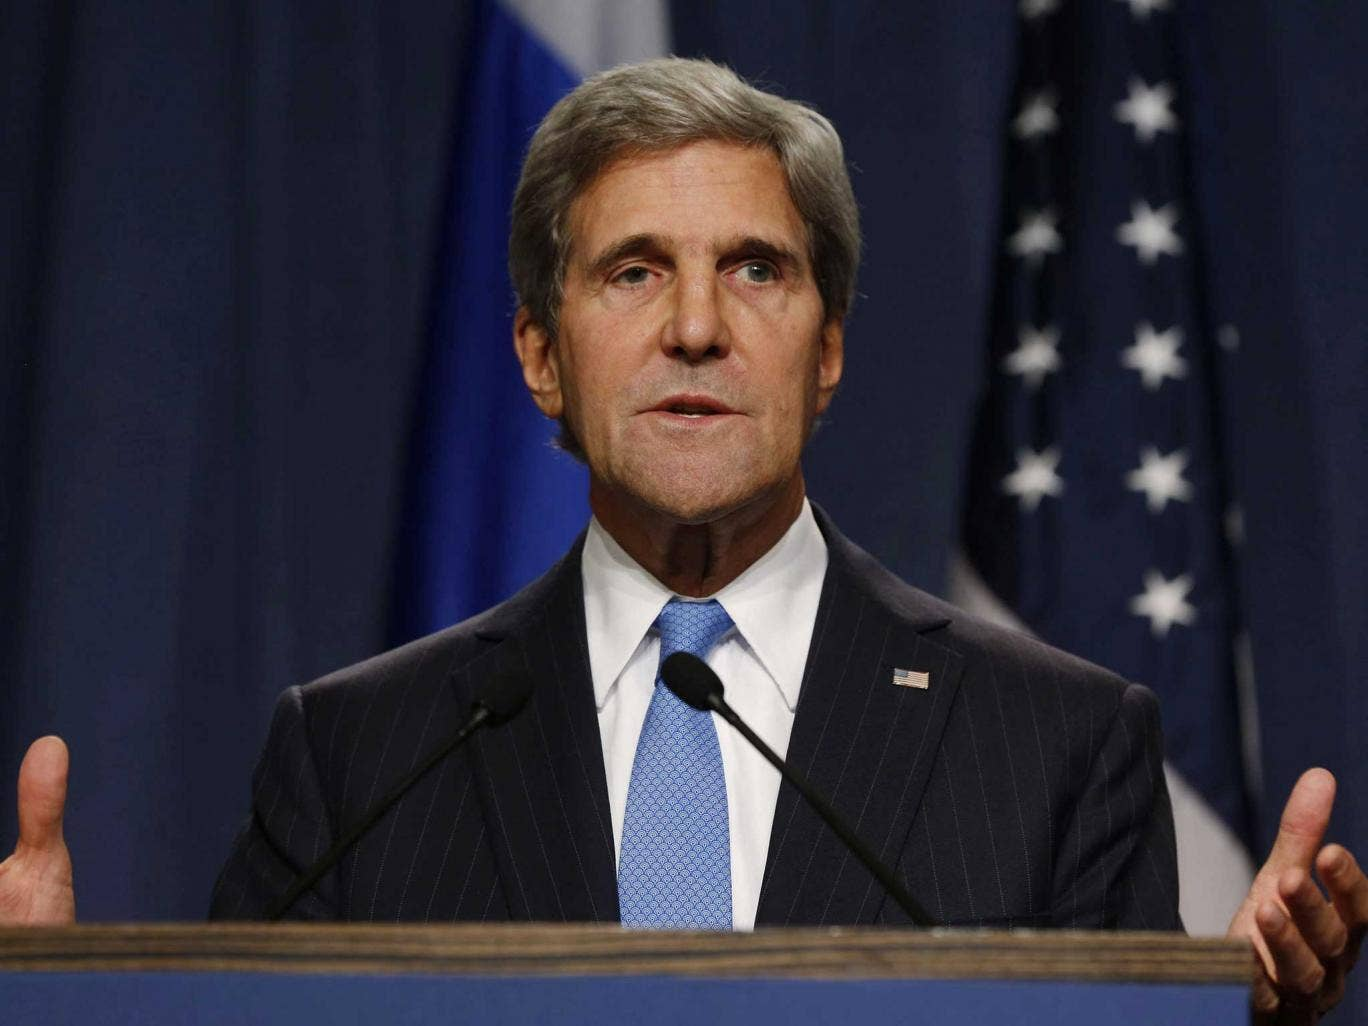 John Kerry opens swiftly-convened talks on Syria's chemical weapons